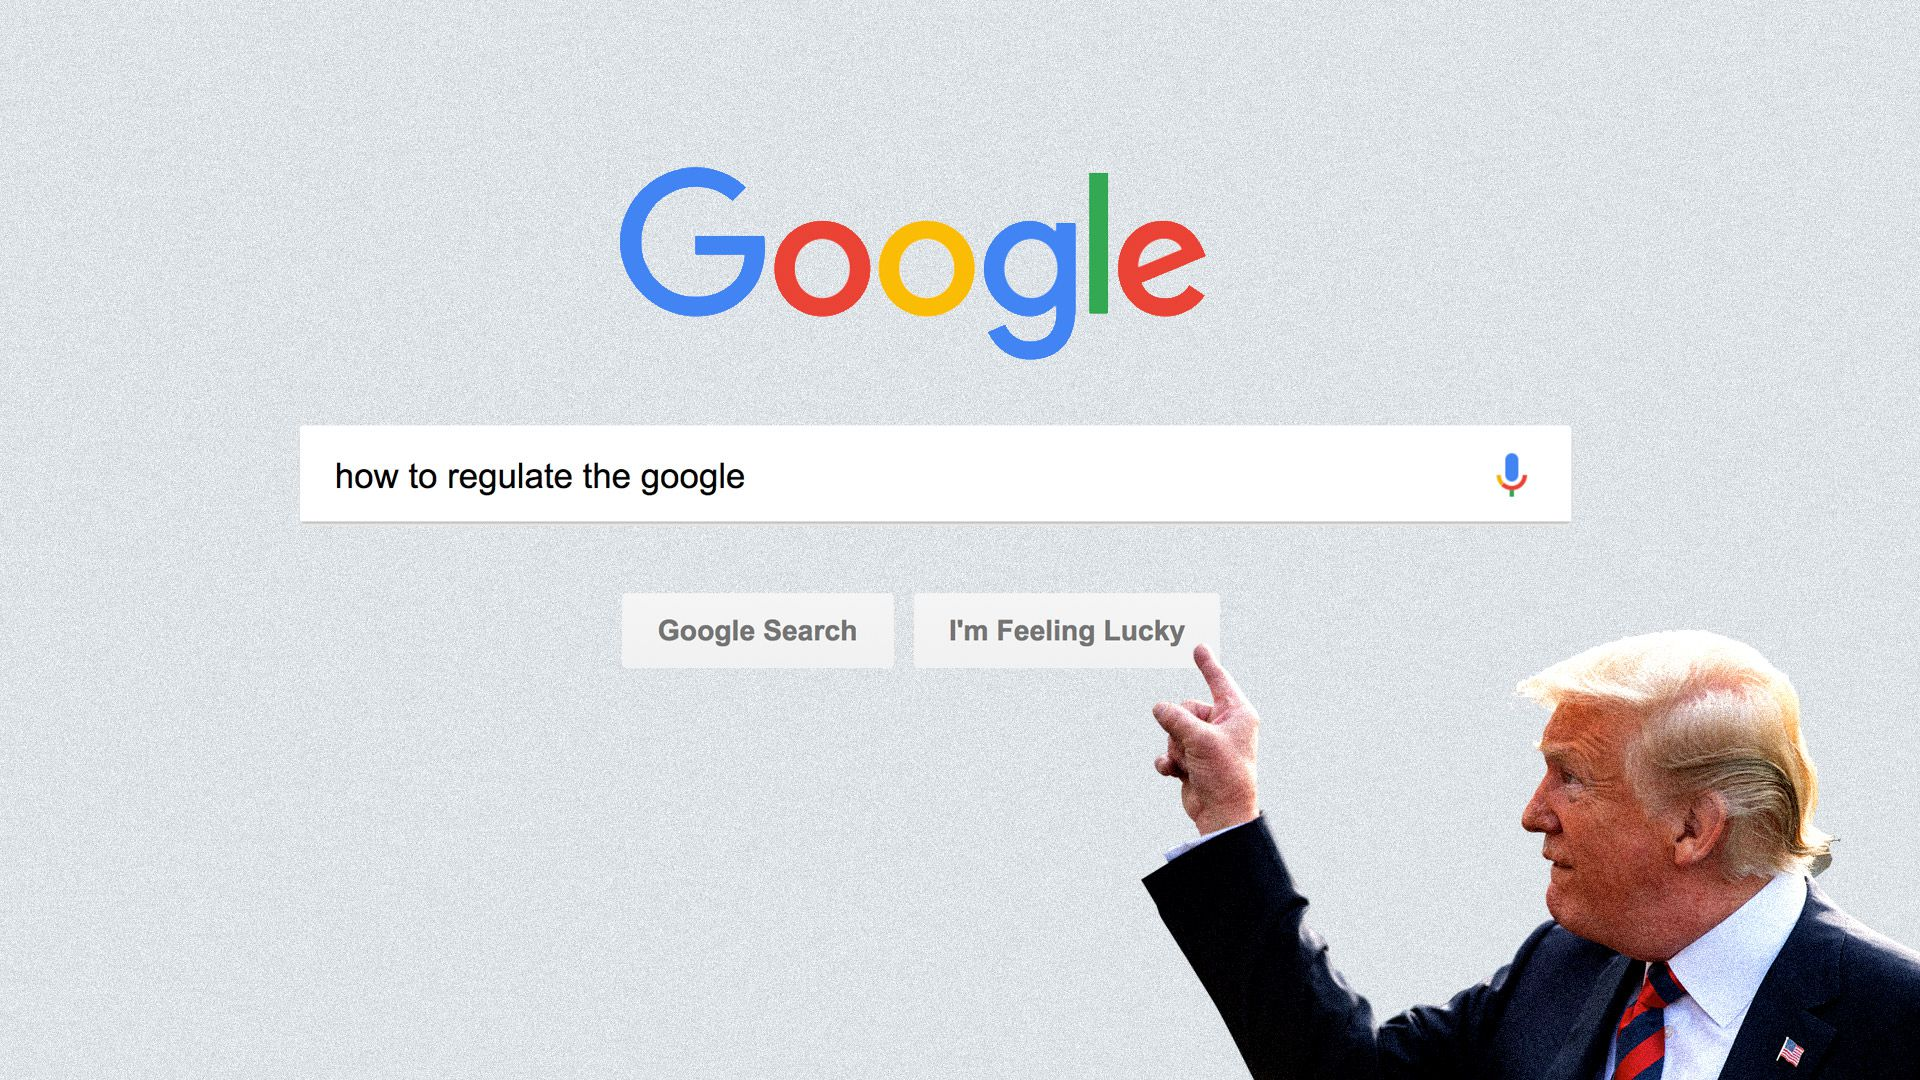 Here is President Trump pointing at a Google search